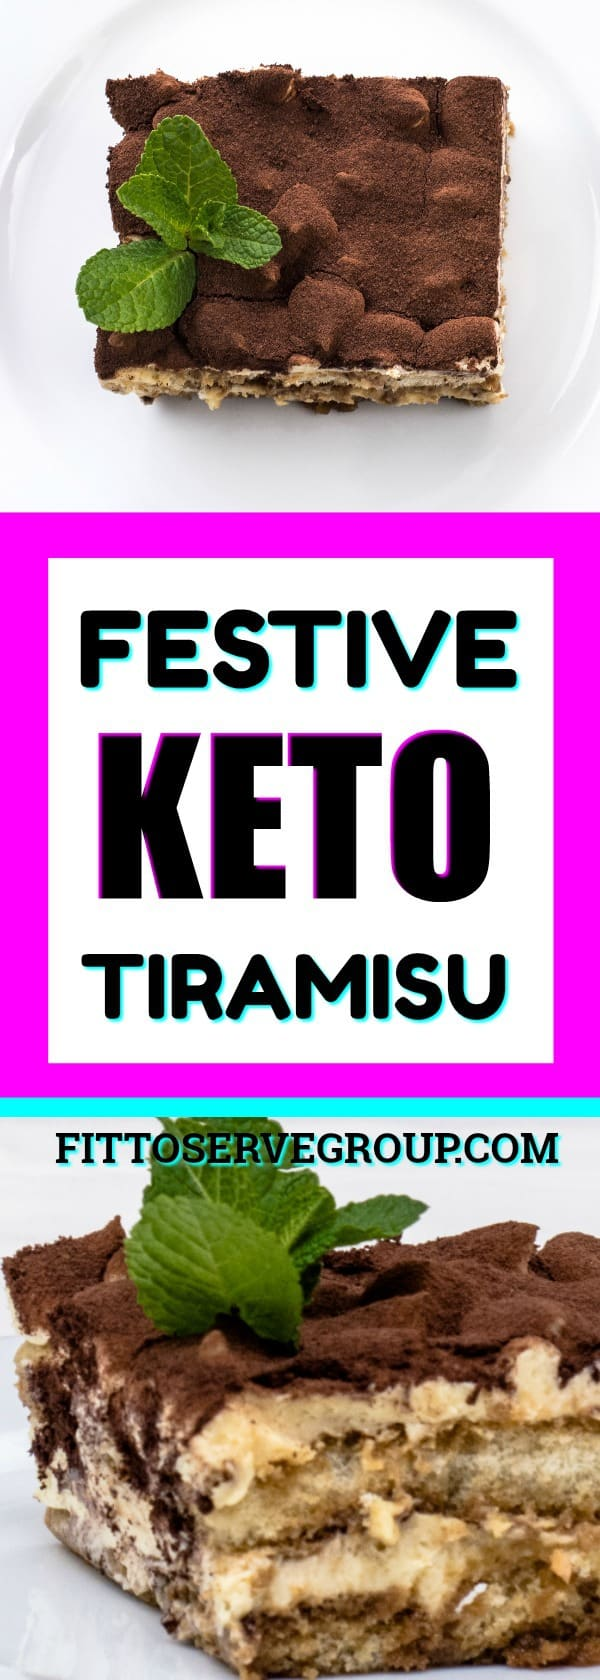 Festive Keto Tiramisu Cake! It's keto tiramisu that is not only delicious but easy to make. It's low in carbs, sugar-free, grain and gluten-free too. keto tiramisu |low carb tiramisu |keto dessert |keto tiramisu cake |low carb tiramisu cake